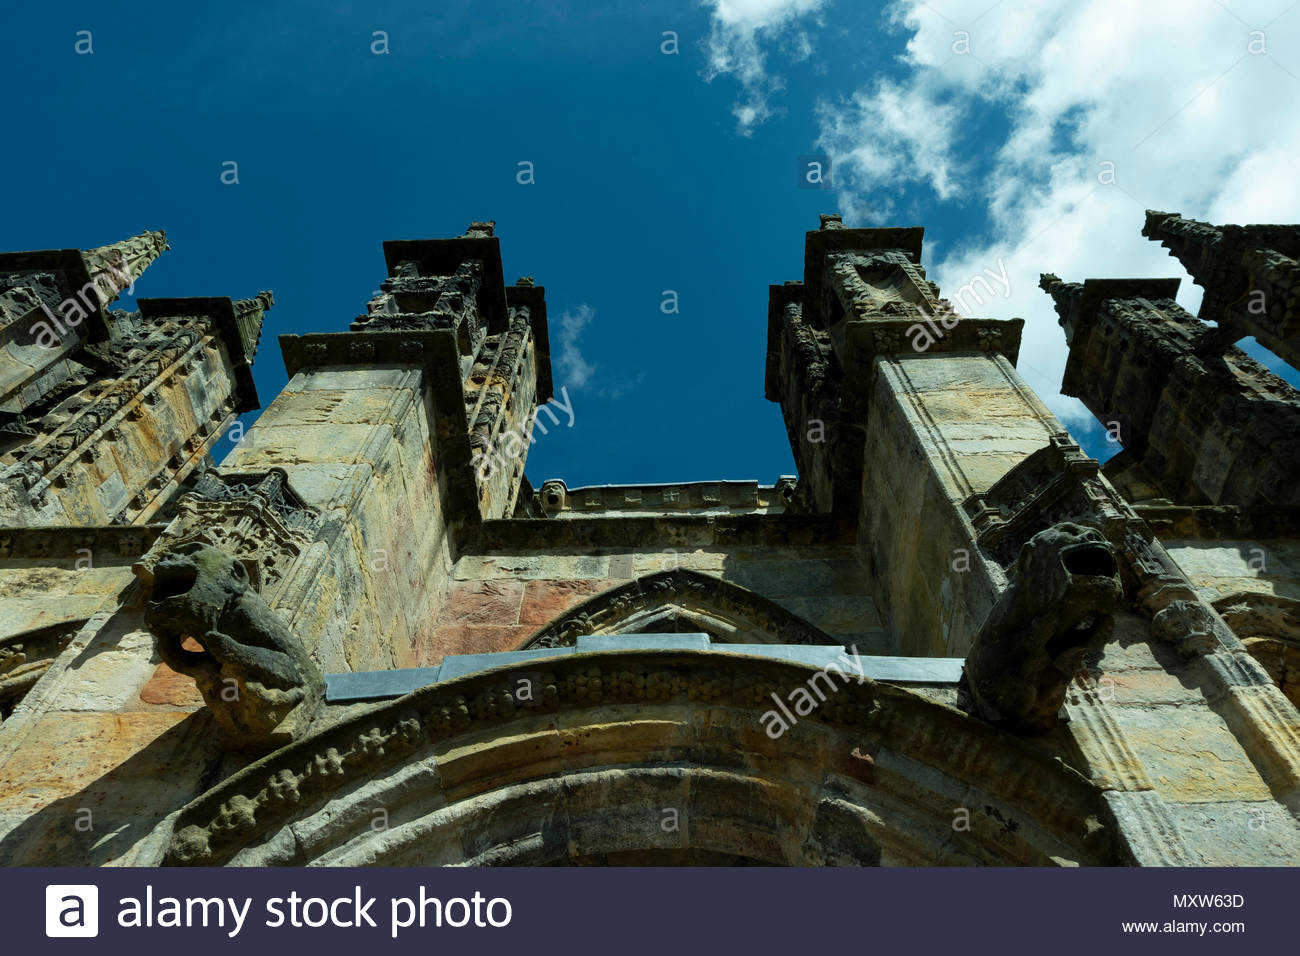 Rosslyn Chapel, formally known as the Collegiate Chapel of St Matthew, is a 15th-century chapel located in the village of Roslin, Midlothian, Scotland - Stock Image